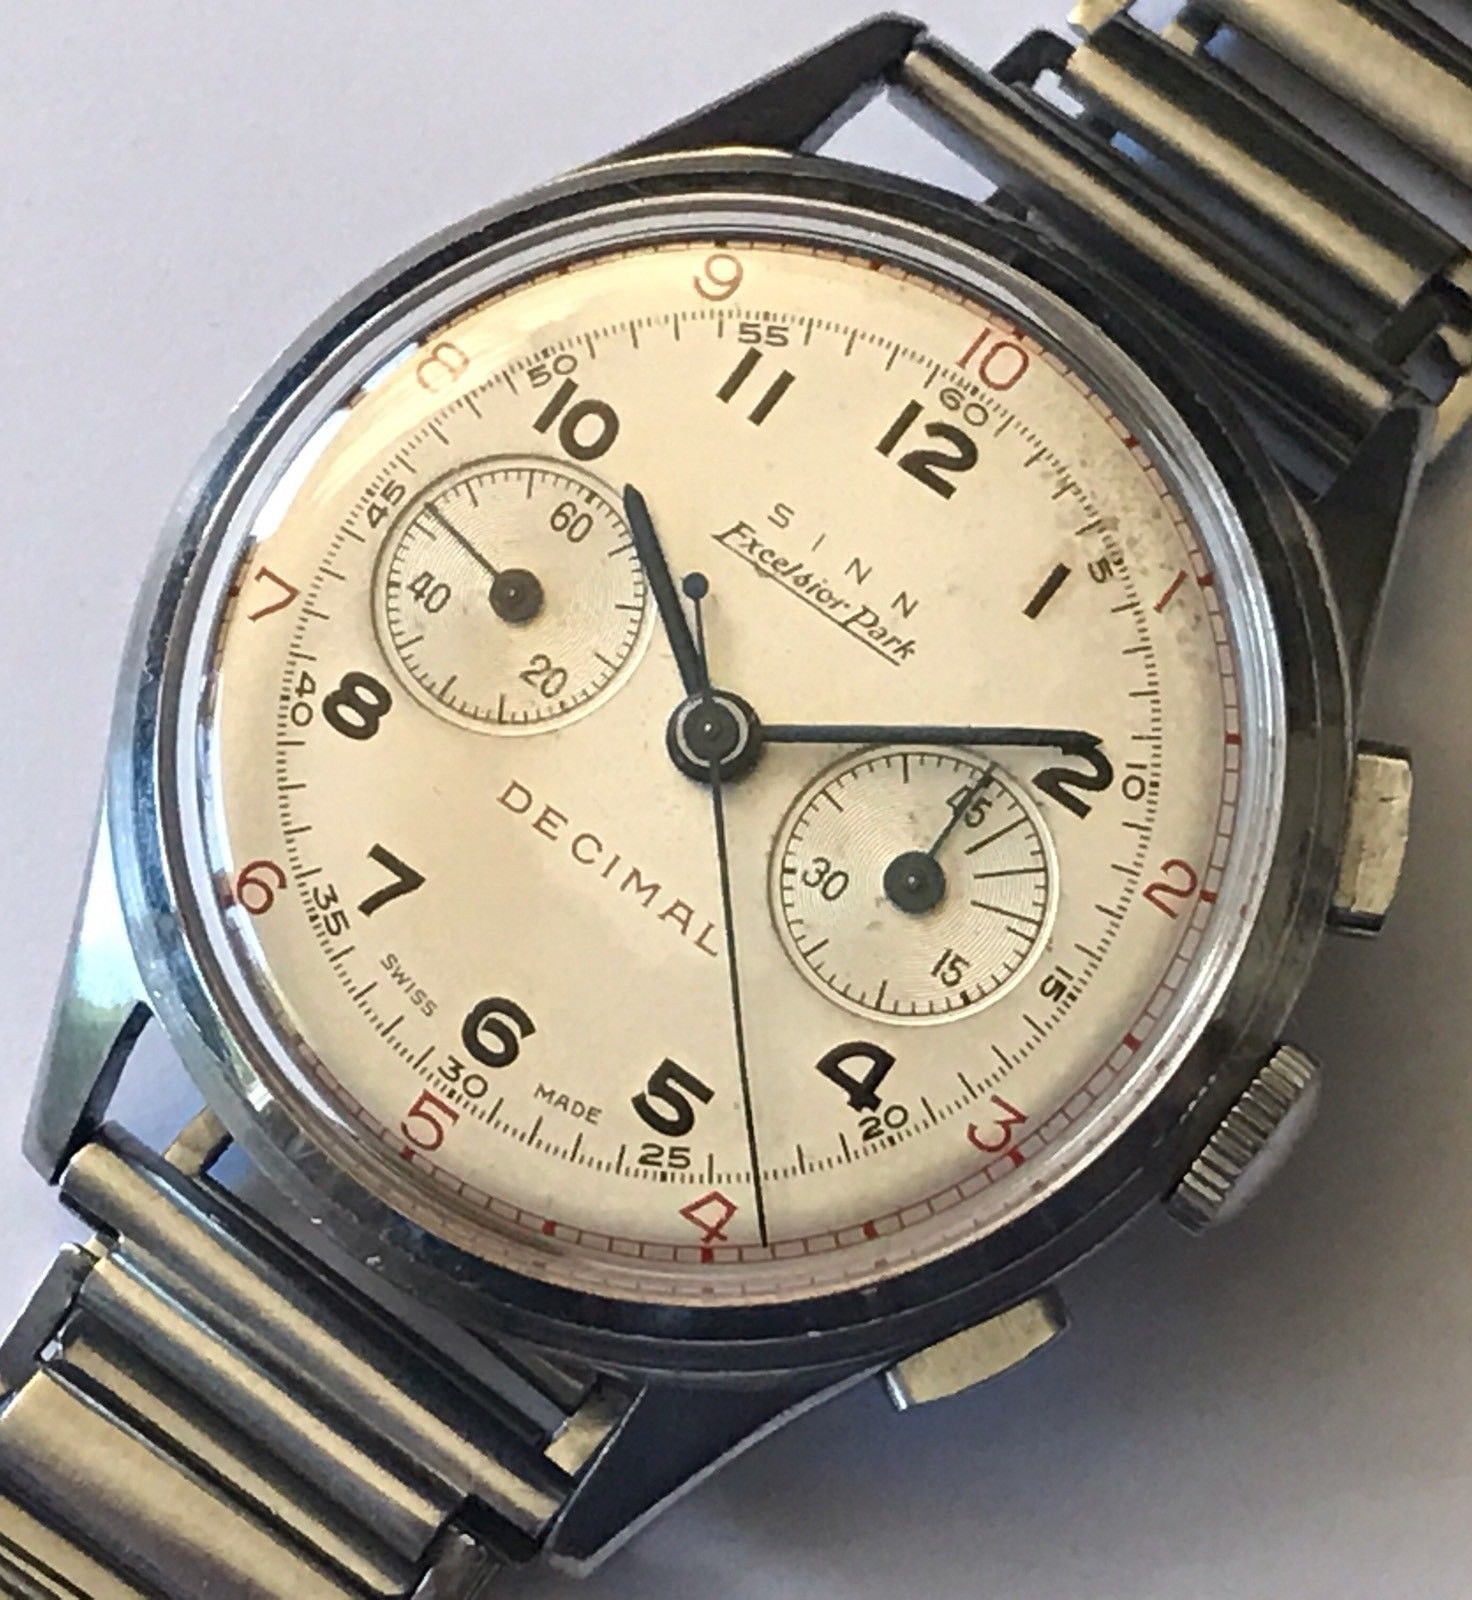 Excelsior Park Decimal Bring a Loupe: A Rolex 'Pre-Daytona' Reference 6234, A Double-Signed Excelsior Park Decimal, An Early Eterna KonTiki, And More Bring a Loupe: A Rolex 'Pre-Daytona' Reference 6234, A Double-Signed Excelsior Park Decimal, An Early Eterna KonTiki, And More EP dial